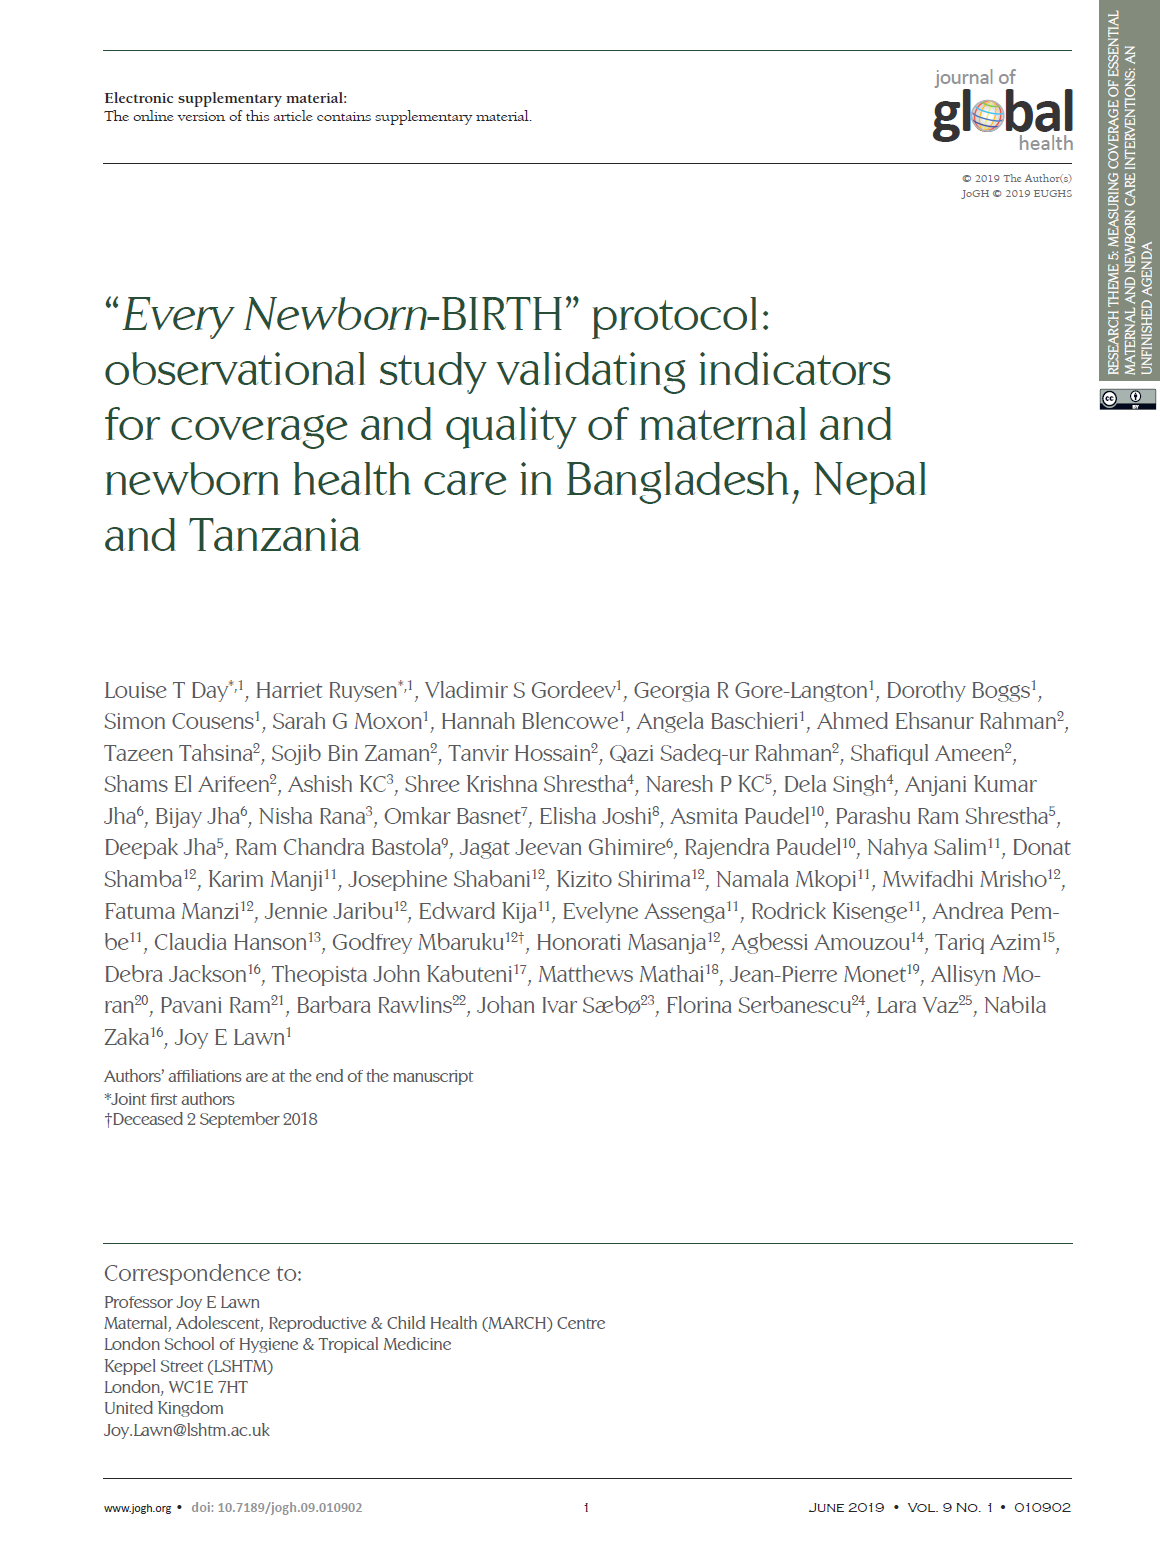 Every Newborn-BIRTH protocol: observational study validating indicators for coverage and quality of maternal and newborn health care in Bangladesh